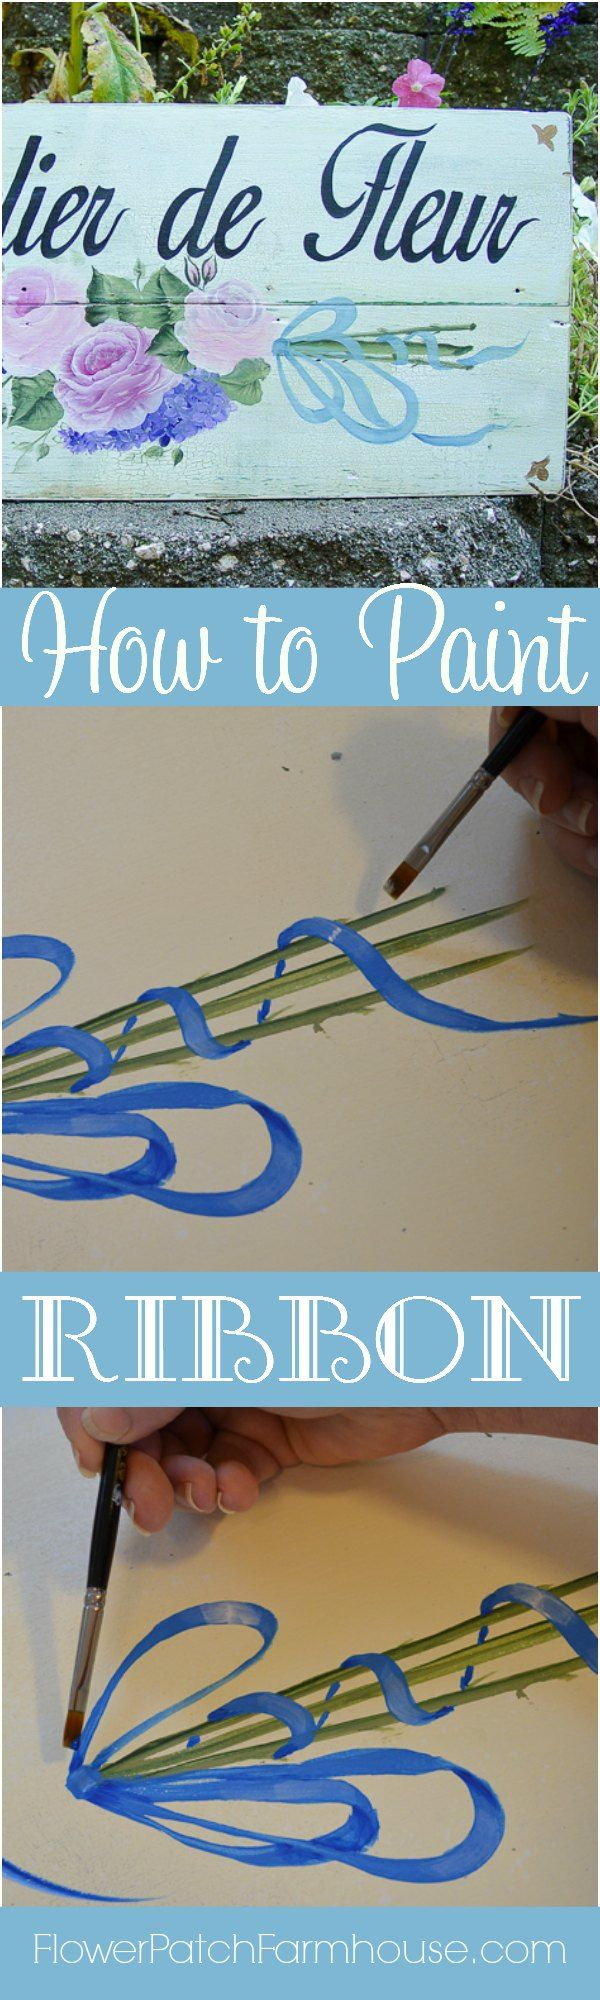 How to Paint Ribbon. 84 best Learn How to Paint images on Pinterest   Painting